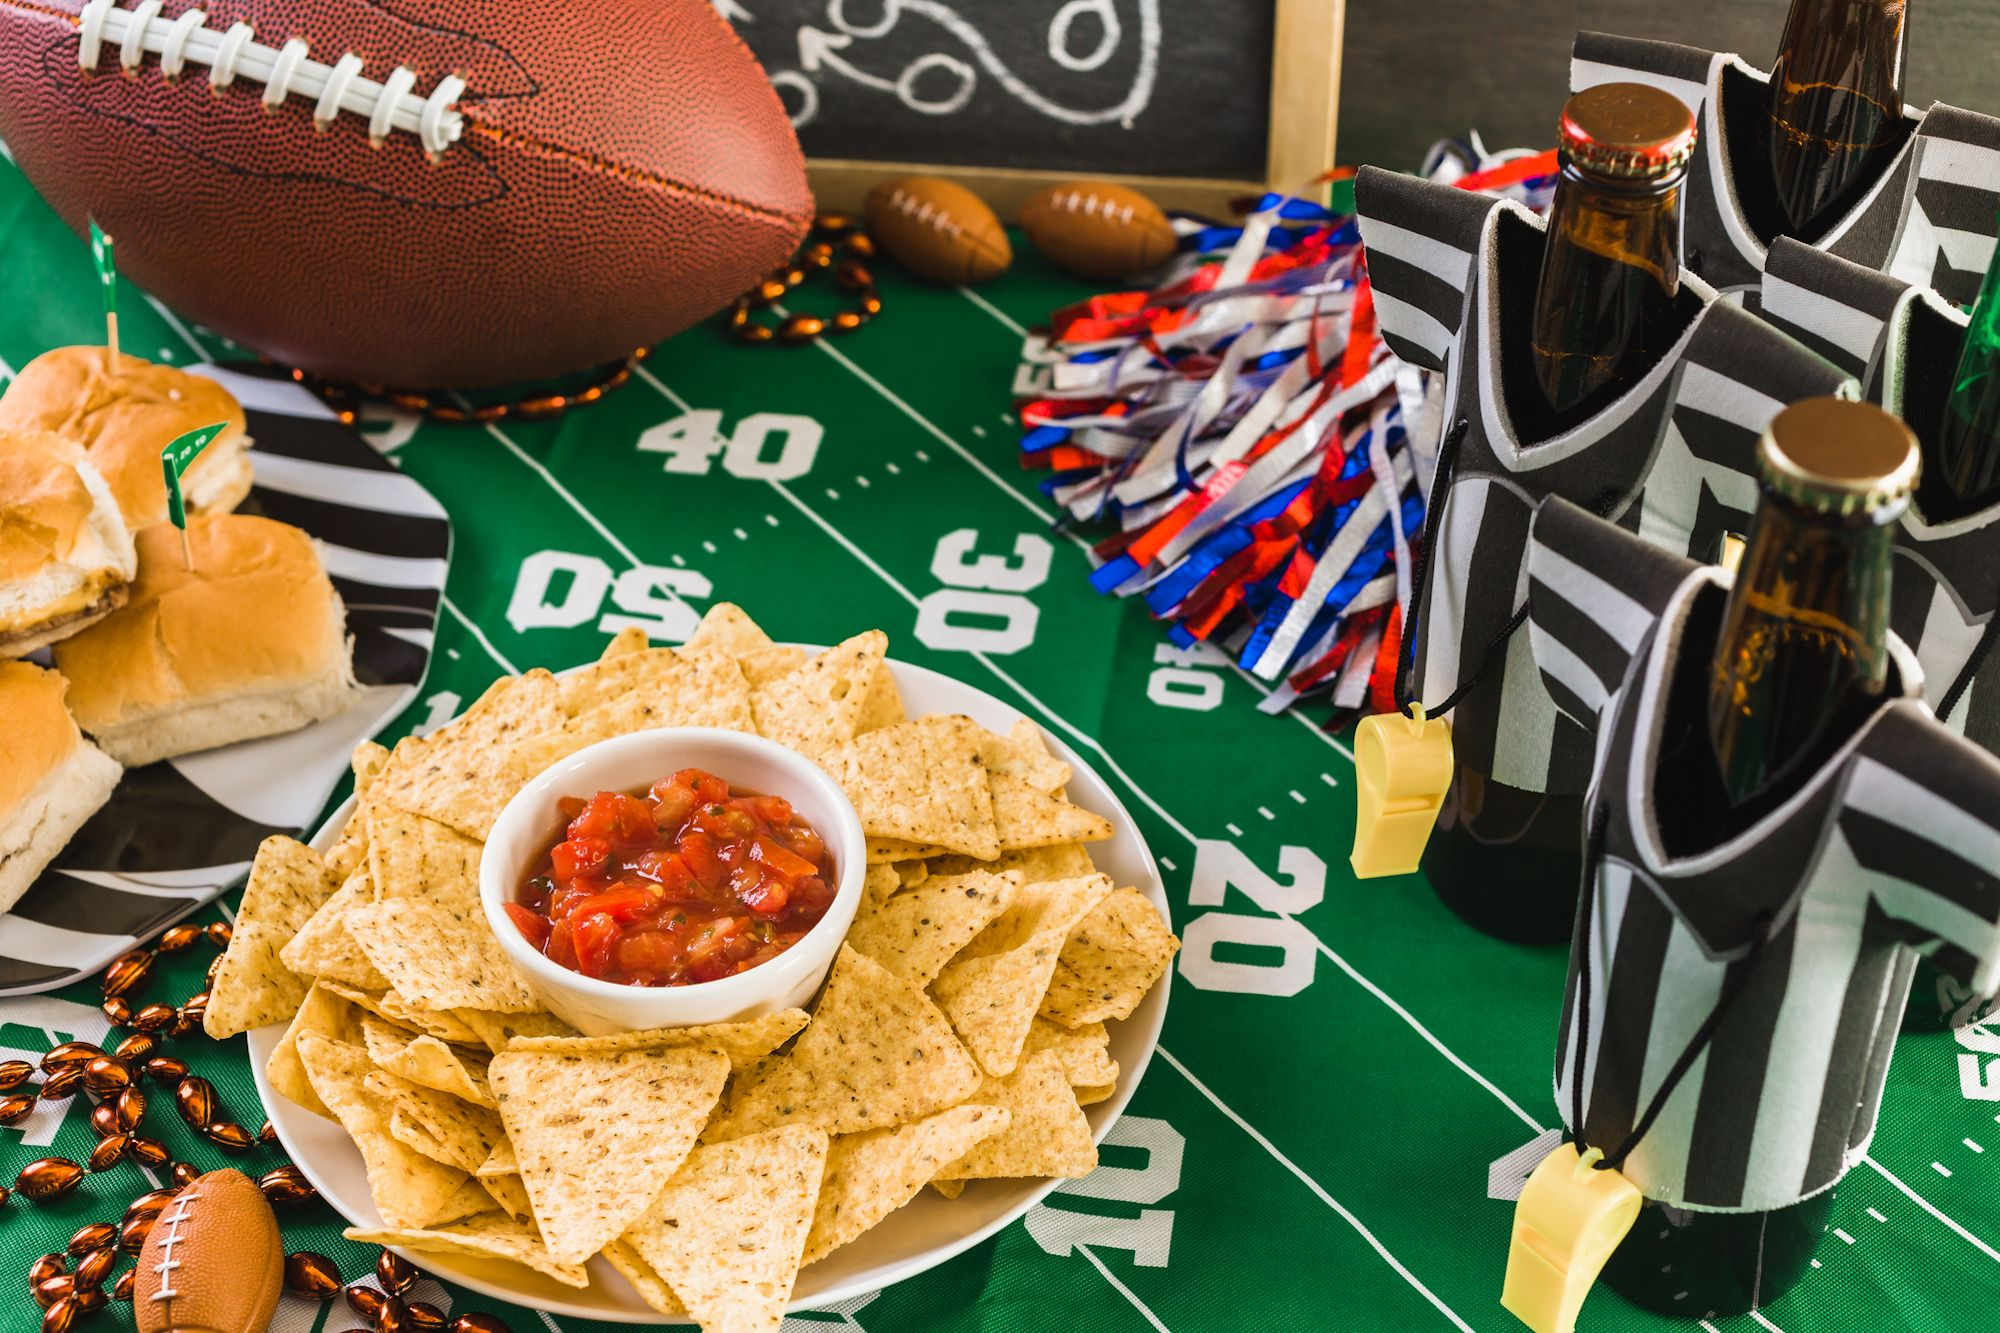 10 Amazon Essentials for Throwing an Amazing Super Bowl Party